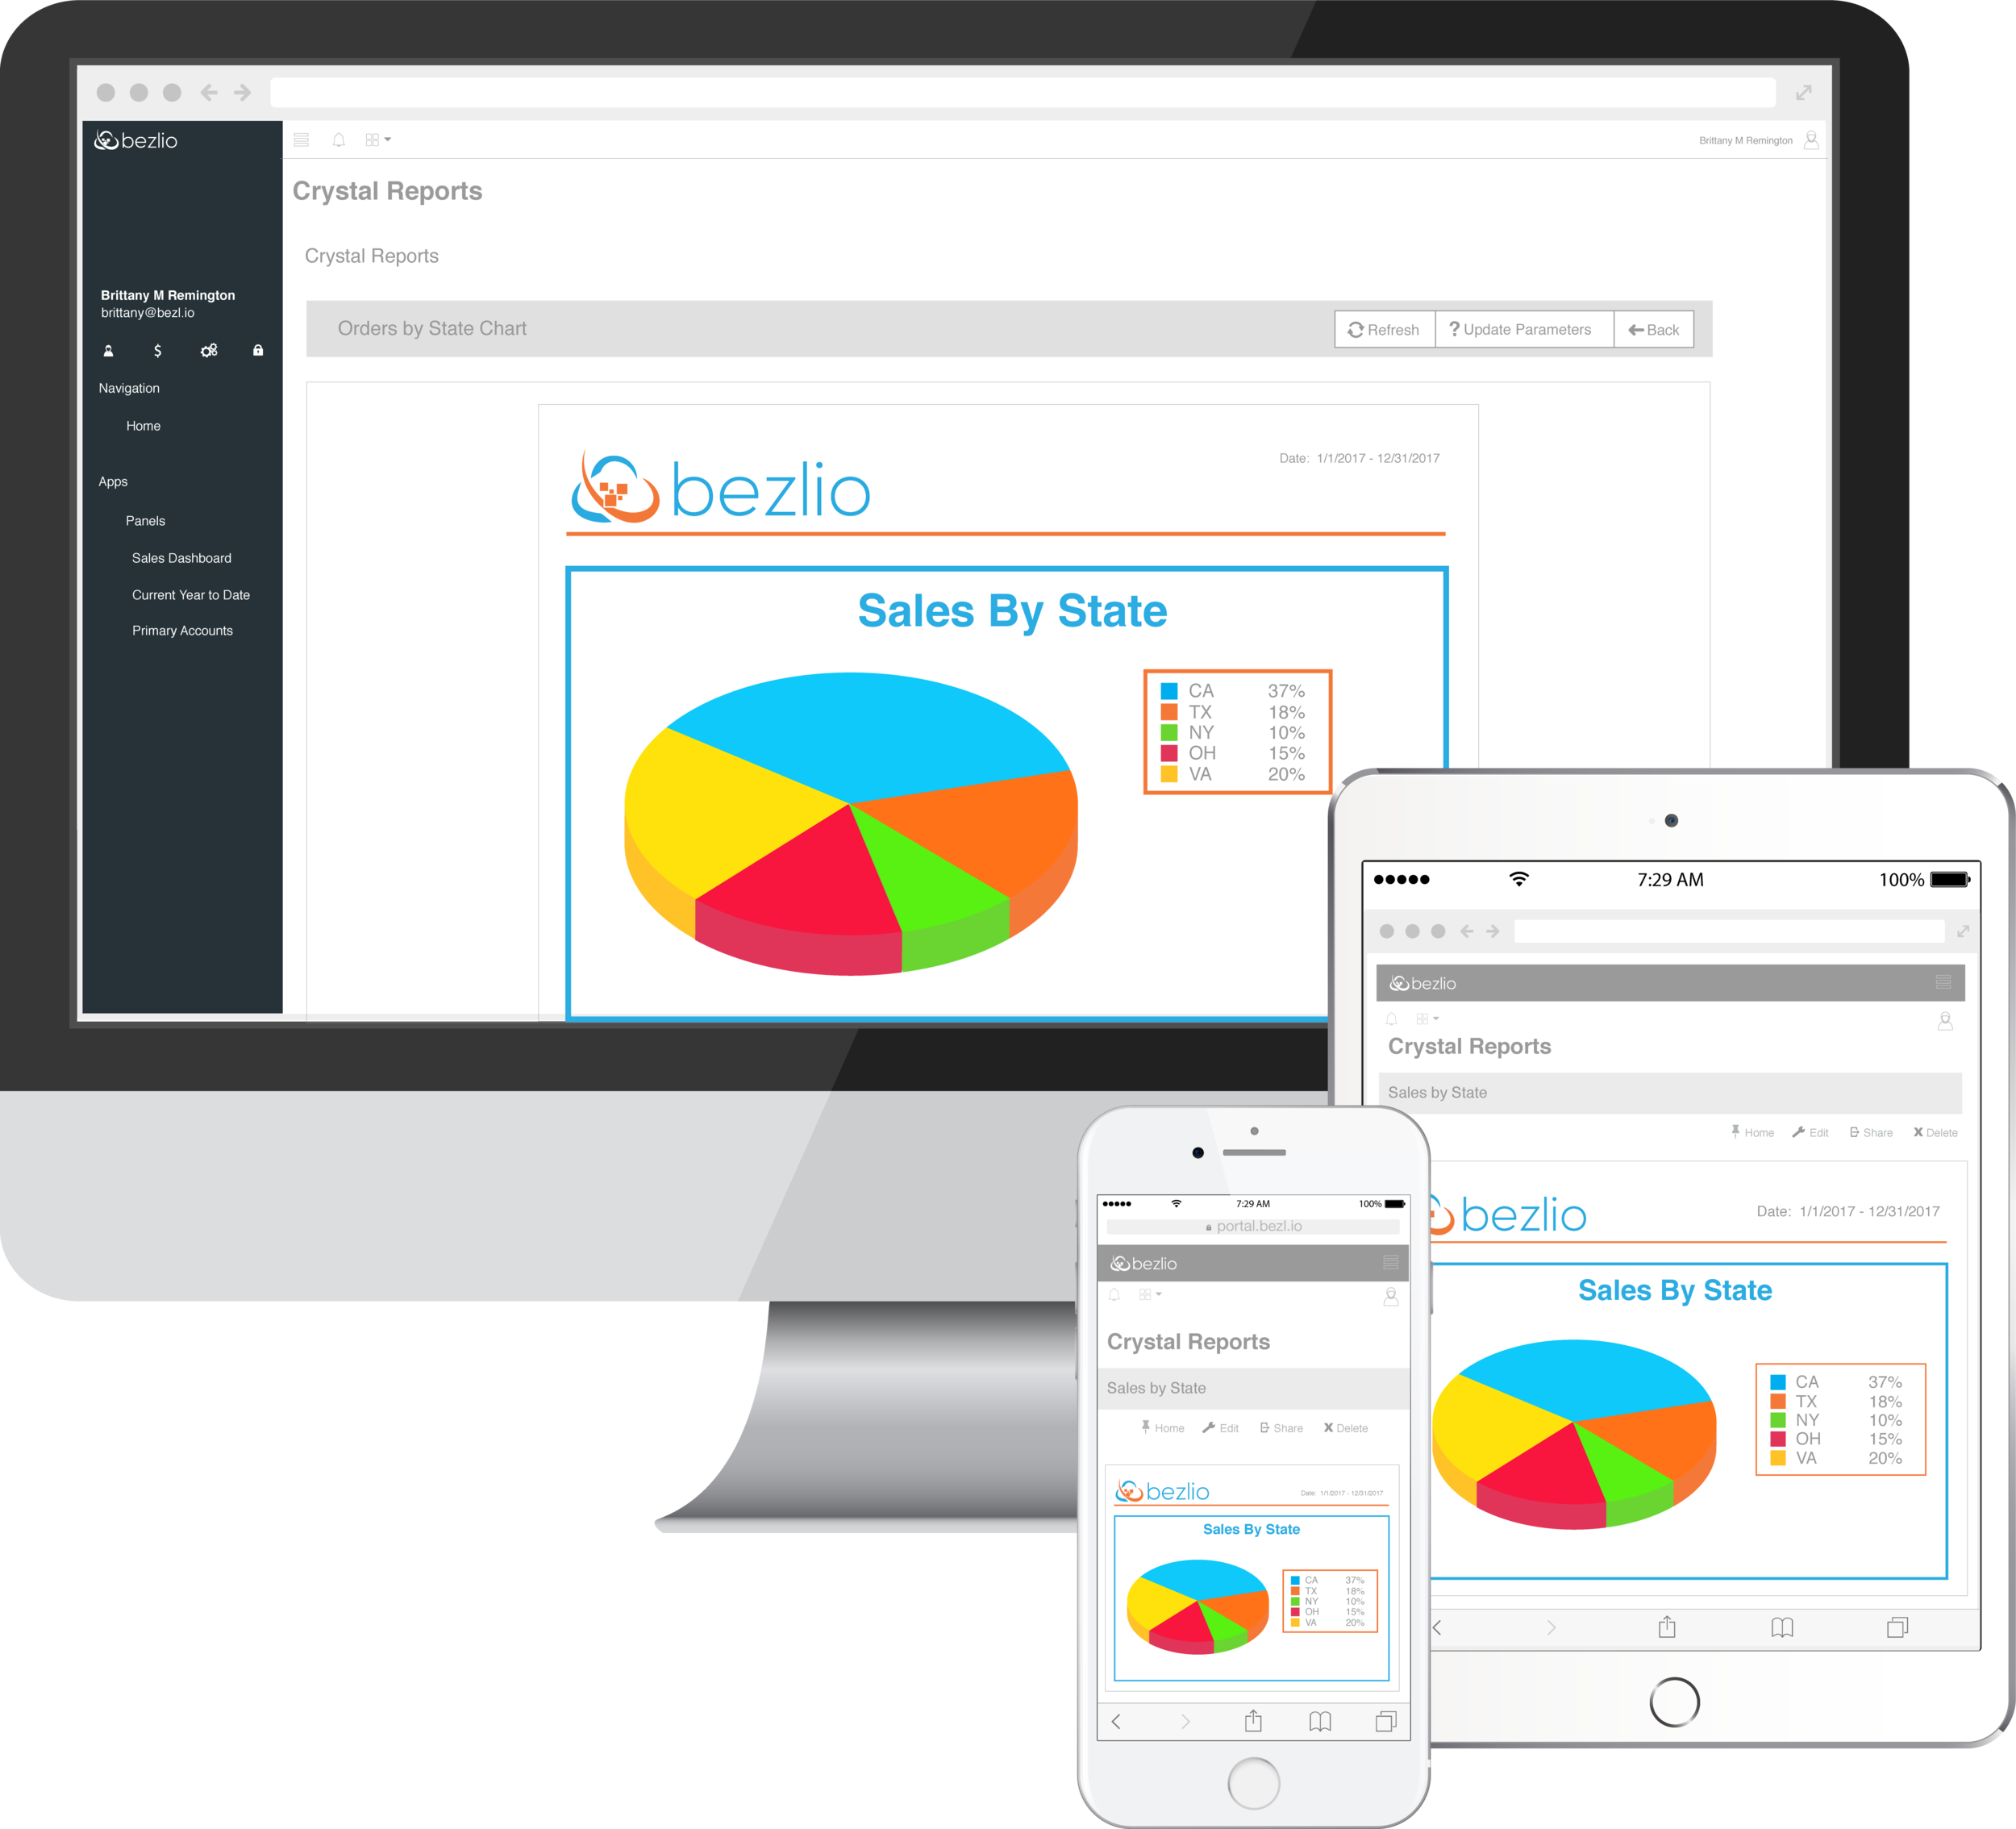 Illustration of Bezlio running Crystal Reports from a Mac, an iPhone, and an iPad, which shows off Bezlio's ability to let users execute the Crystal Reports web viewer from any mobile device.